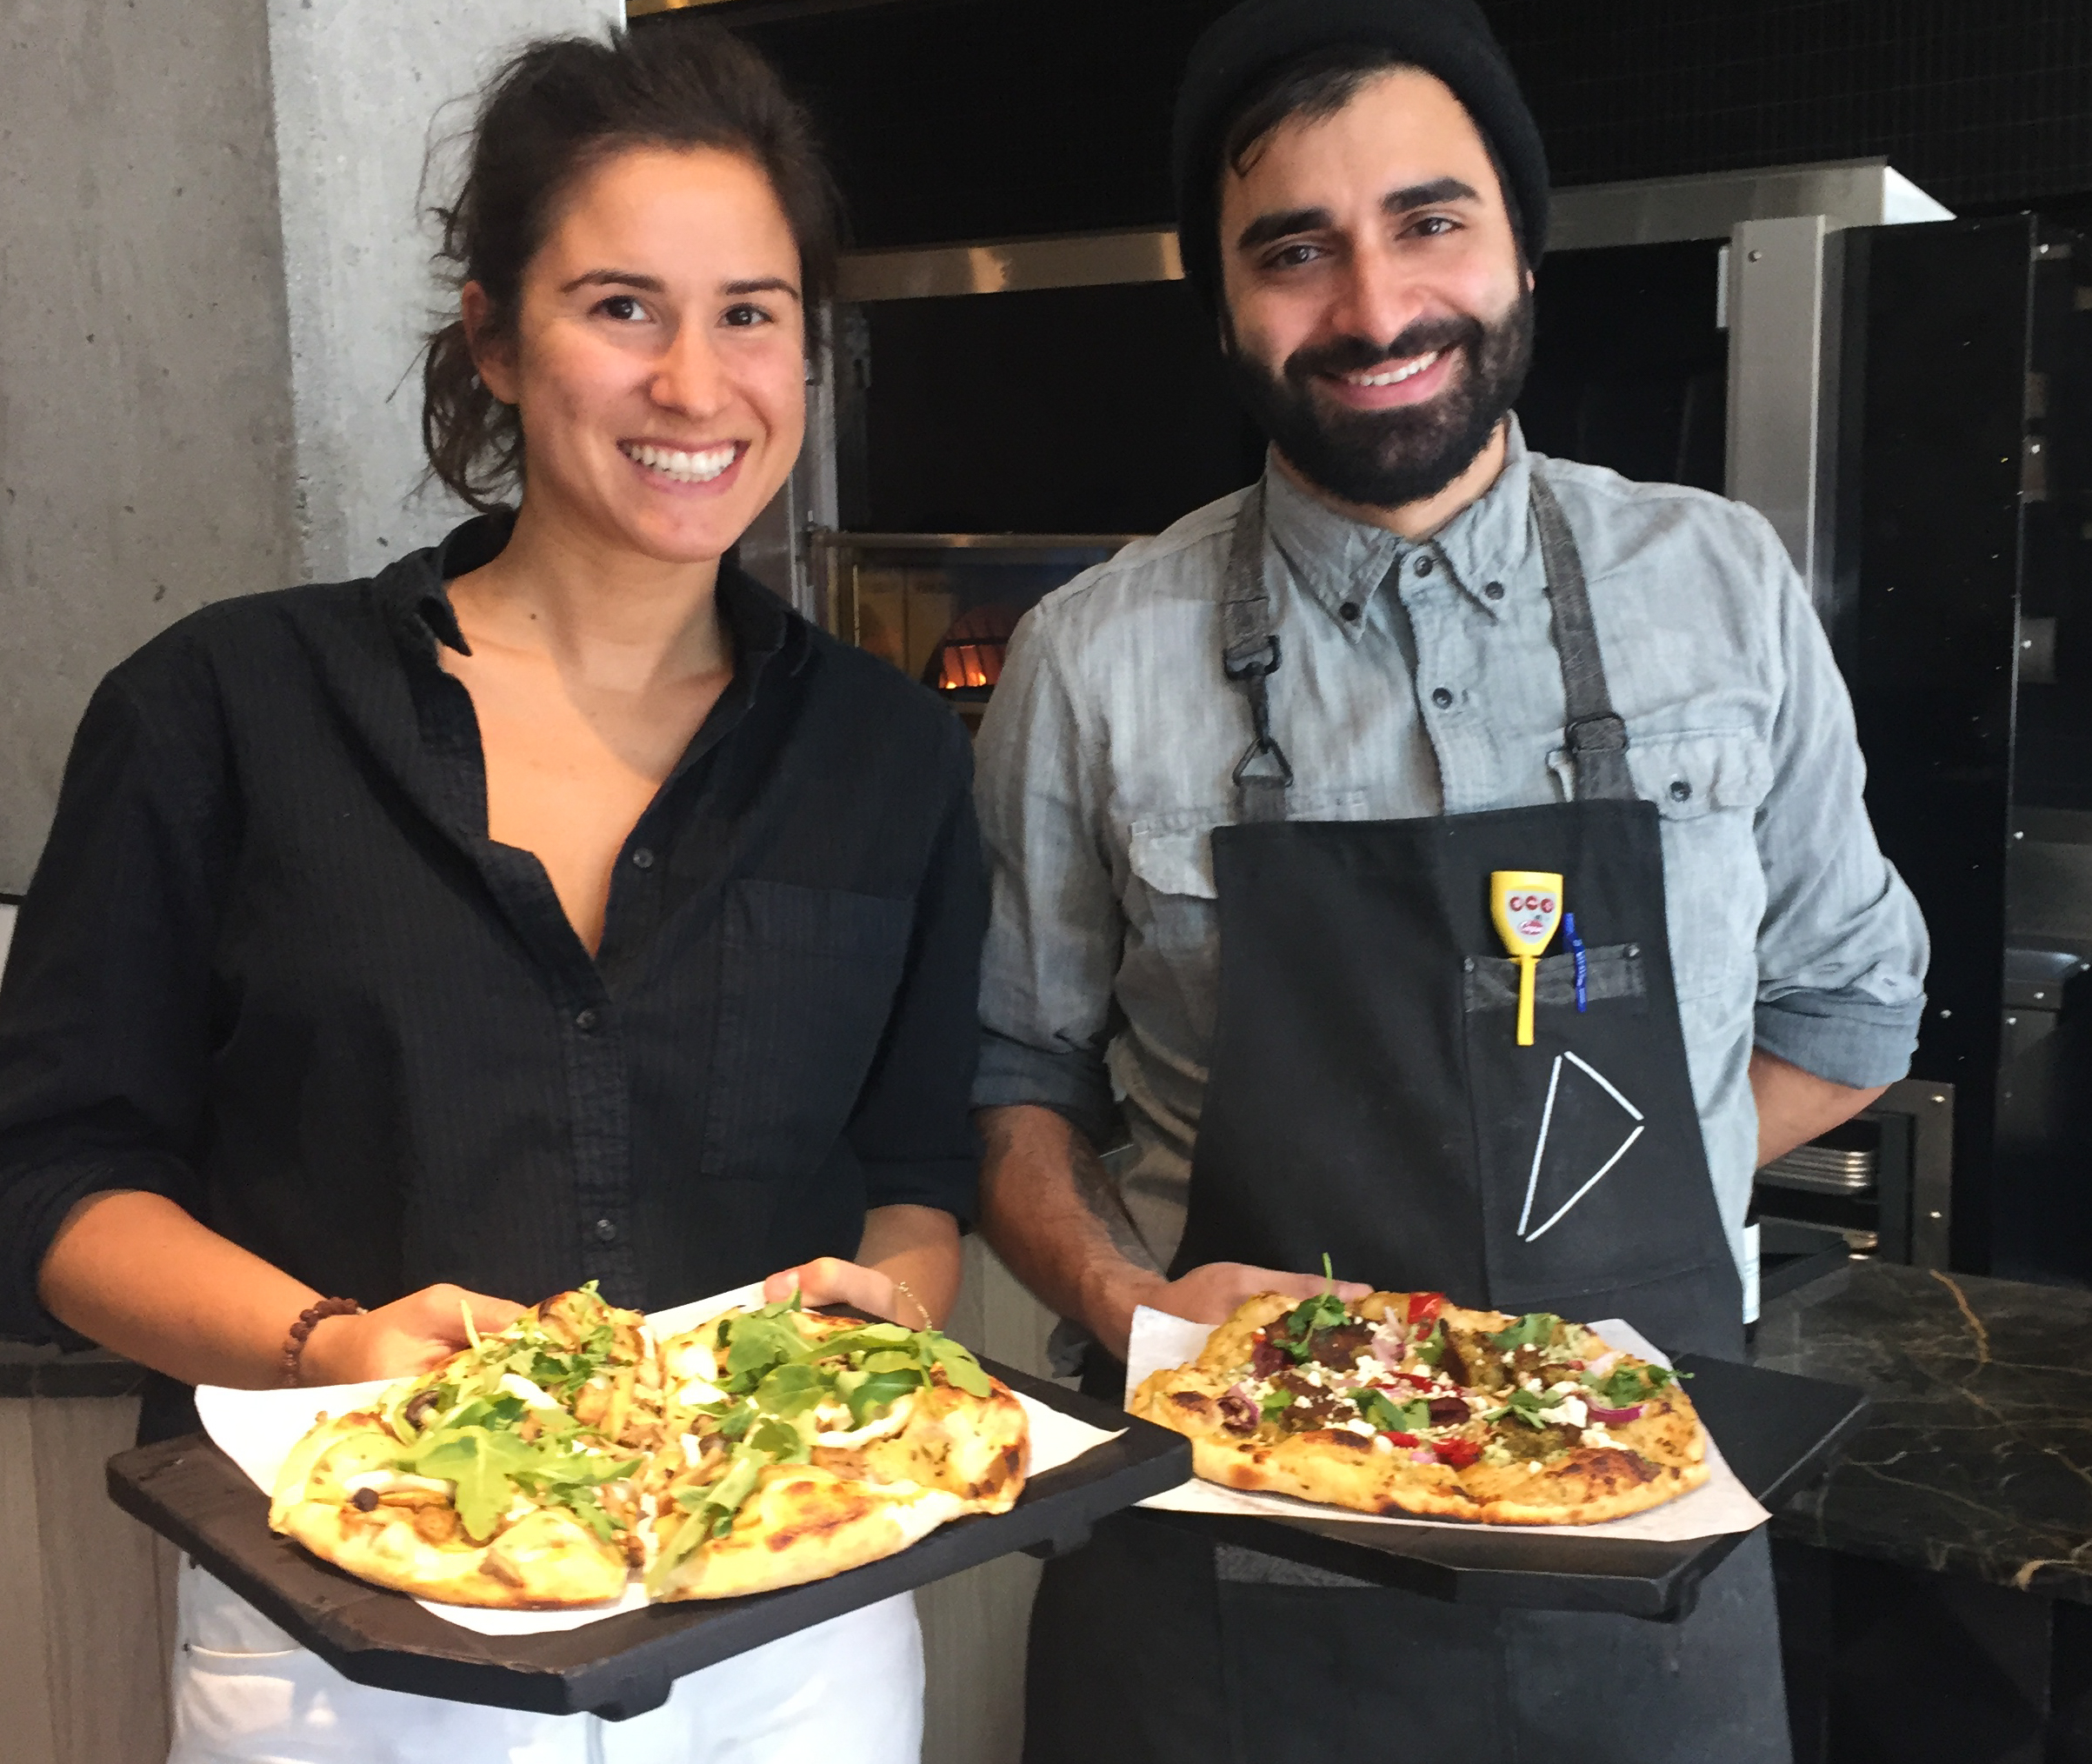 Lia Loukis and Jim Vesal, owners of Virtuous Pie in Vancouver, British Columbia